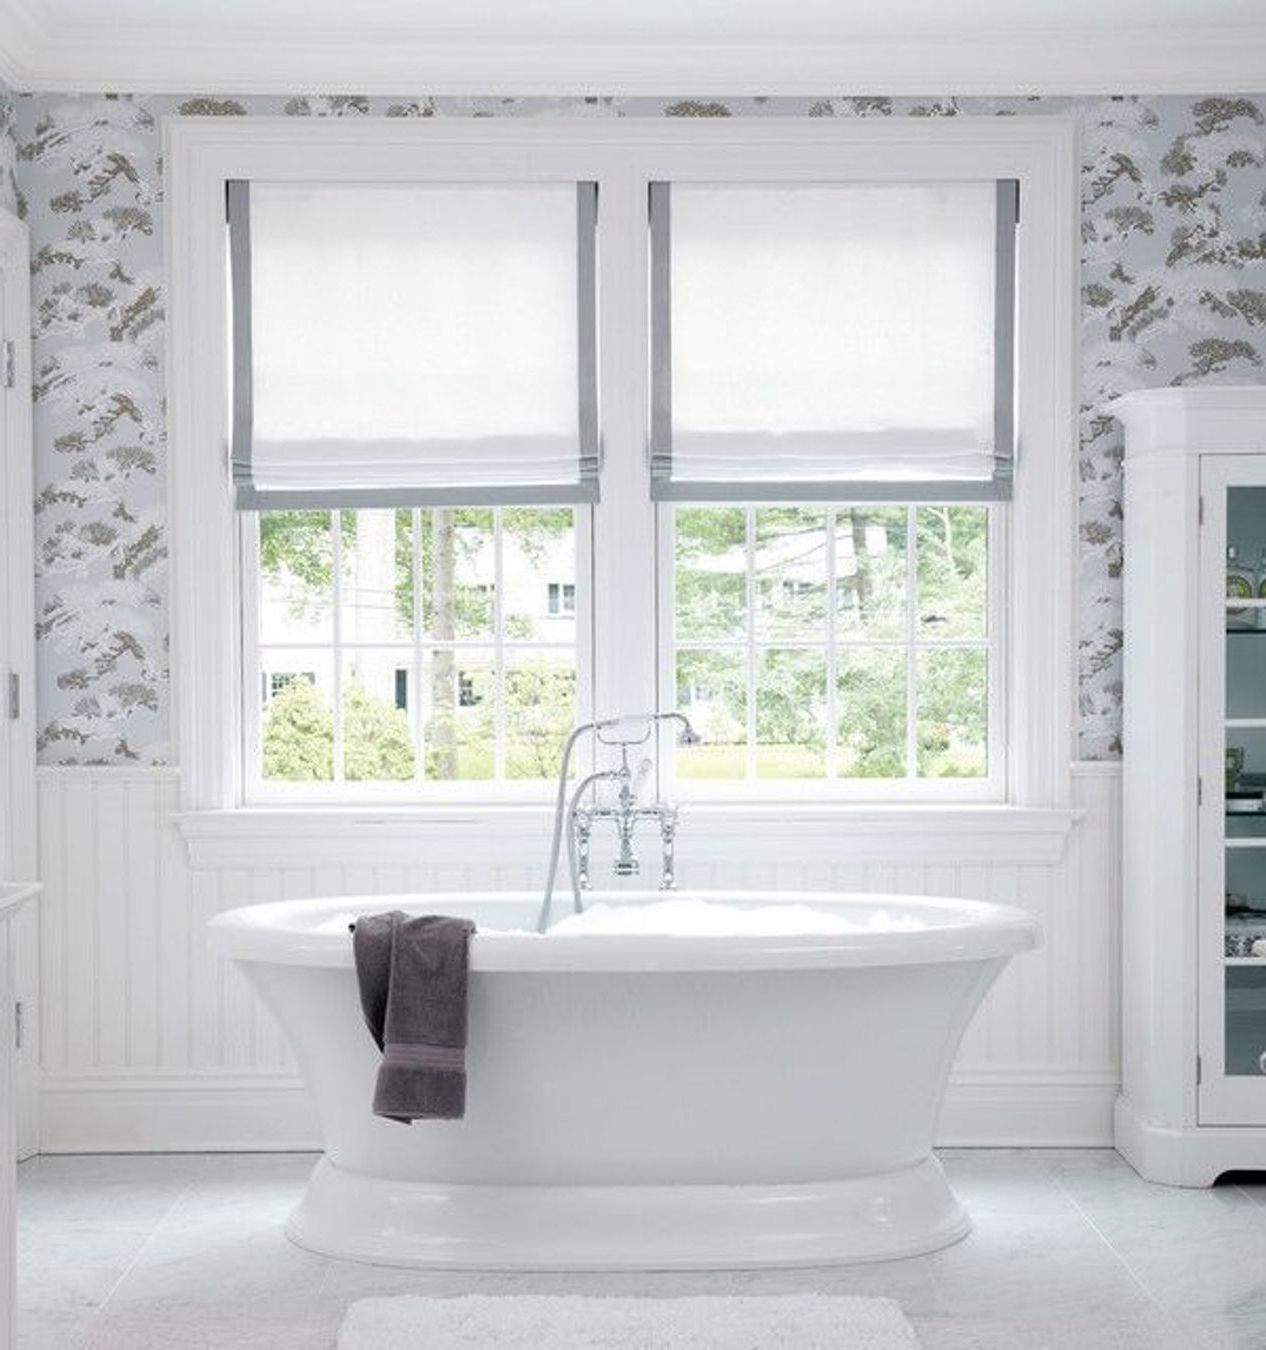 Beautiful Bathroom Will Dusty Blue And Gray And White Patterned In Bathroom Roman Blinds (Image 3 of 15)